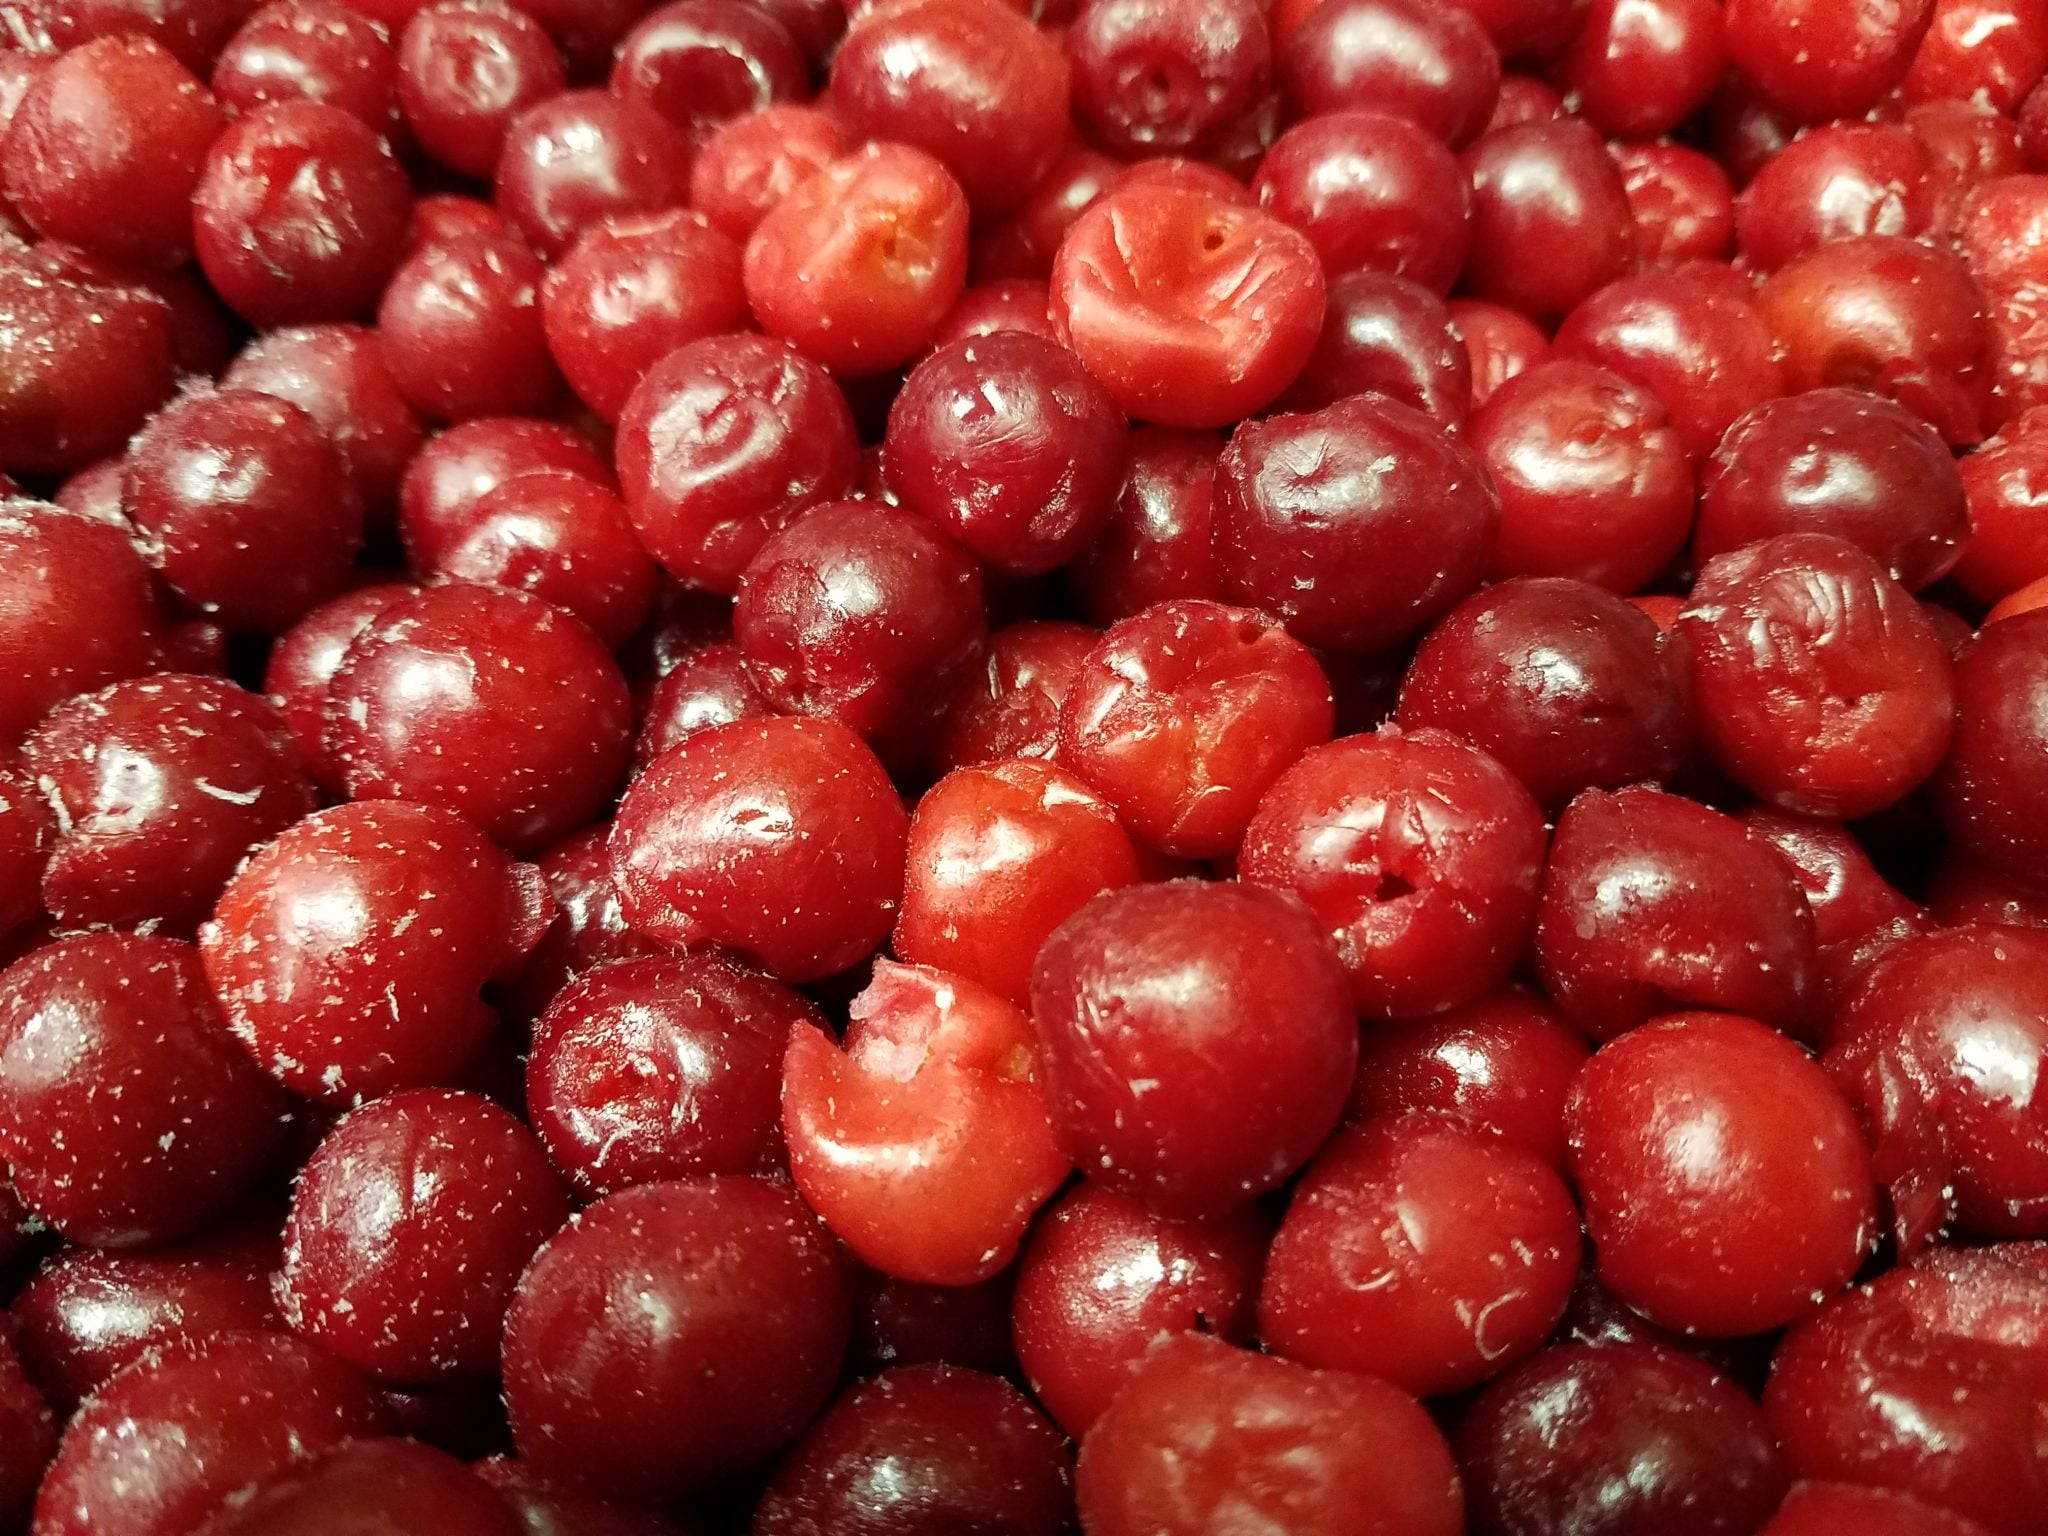 Pile of sour cherries